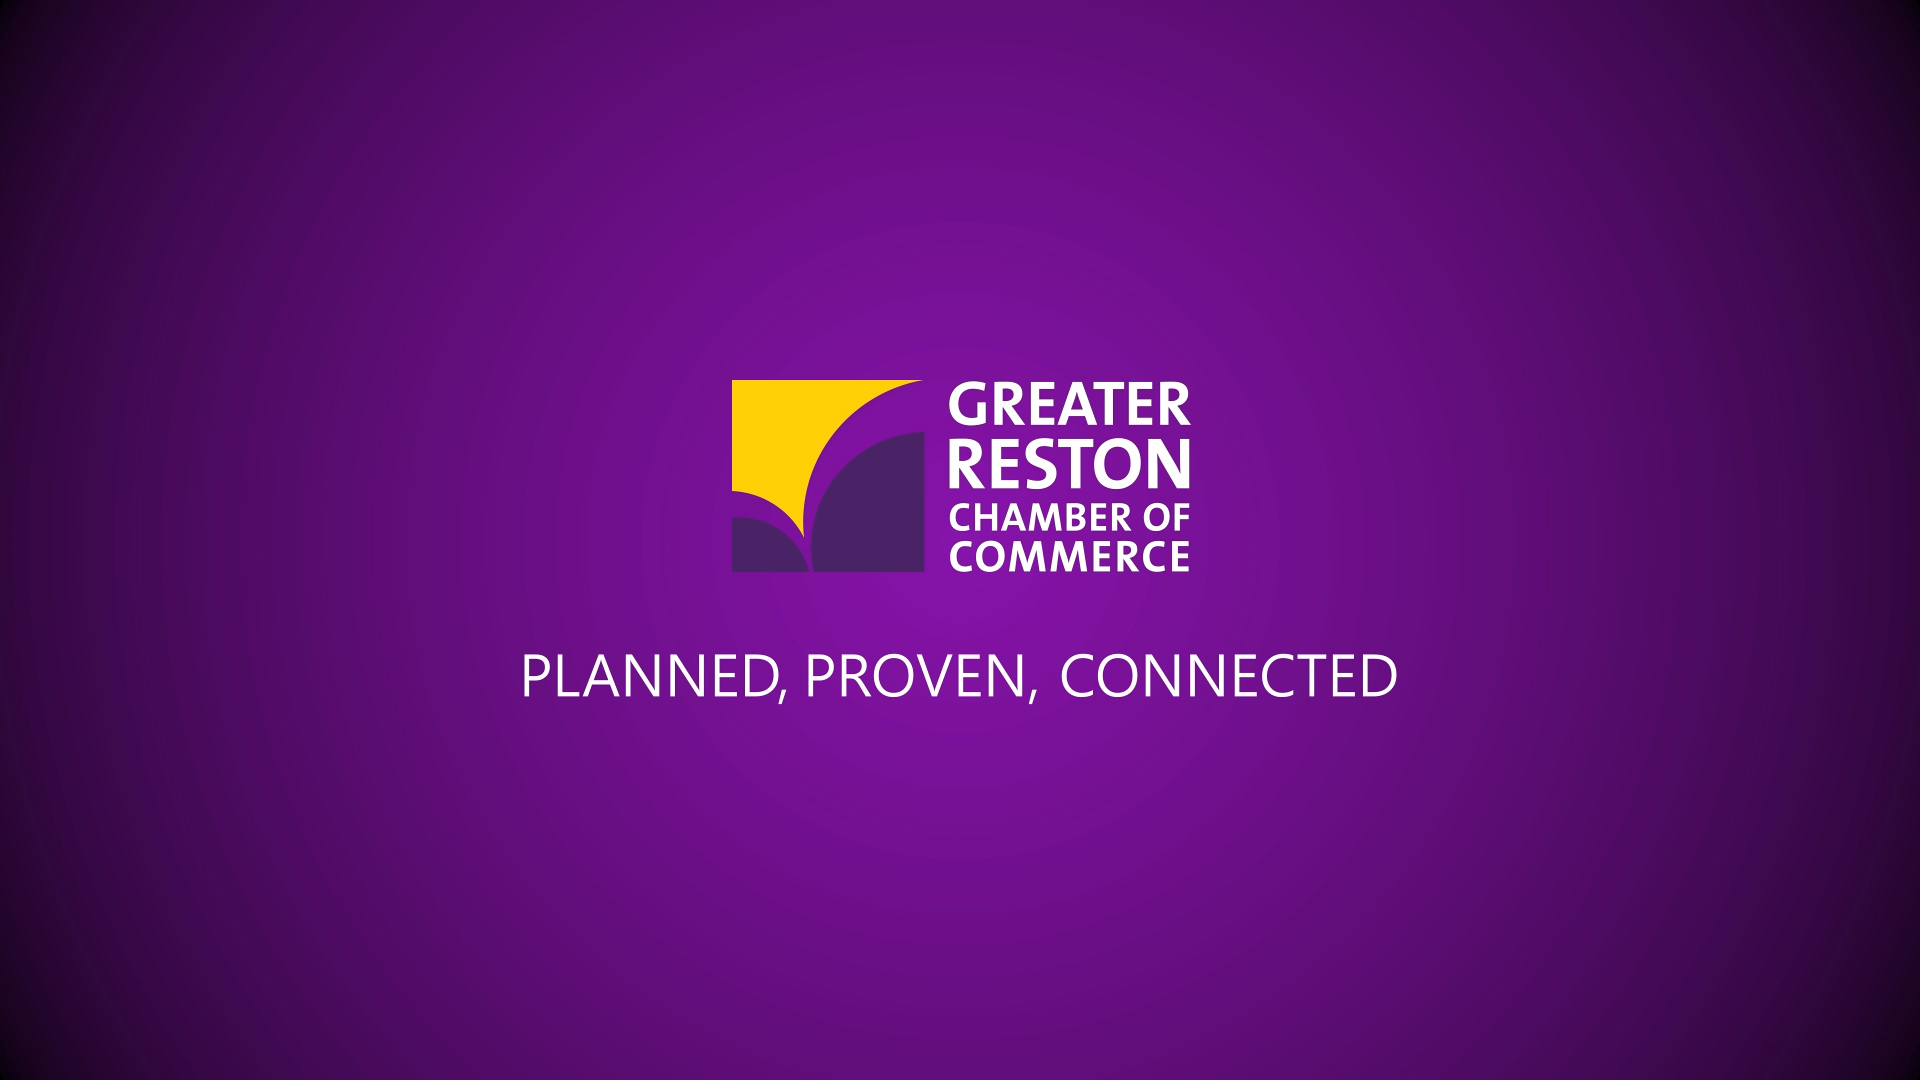 Promotional Video Screenshot for Greater Reston Chamber of Commerce